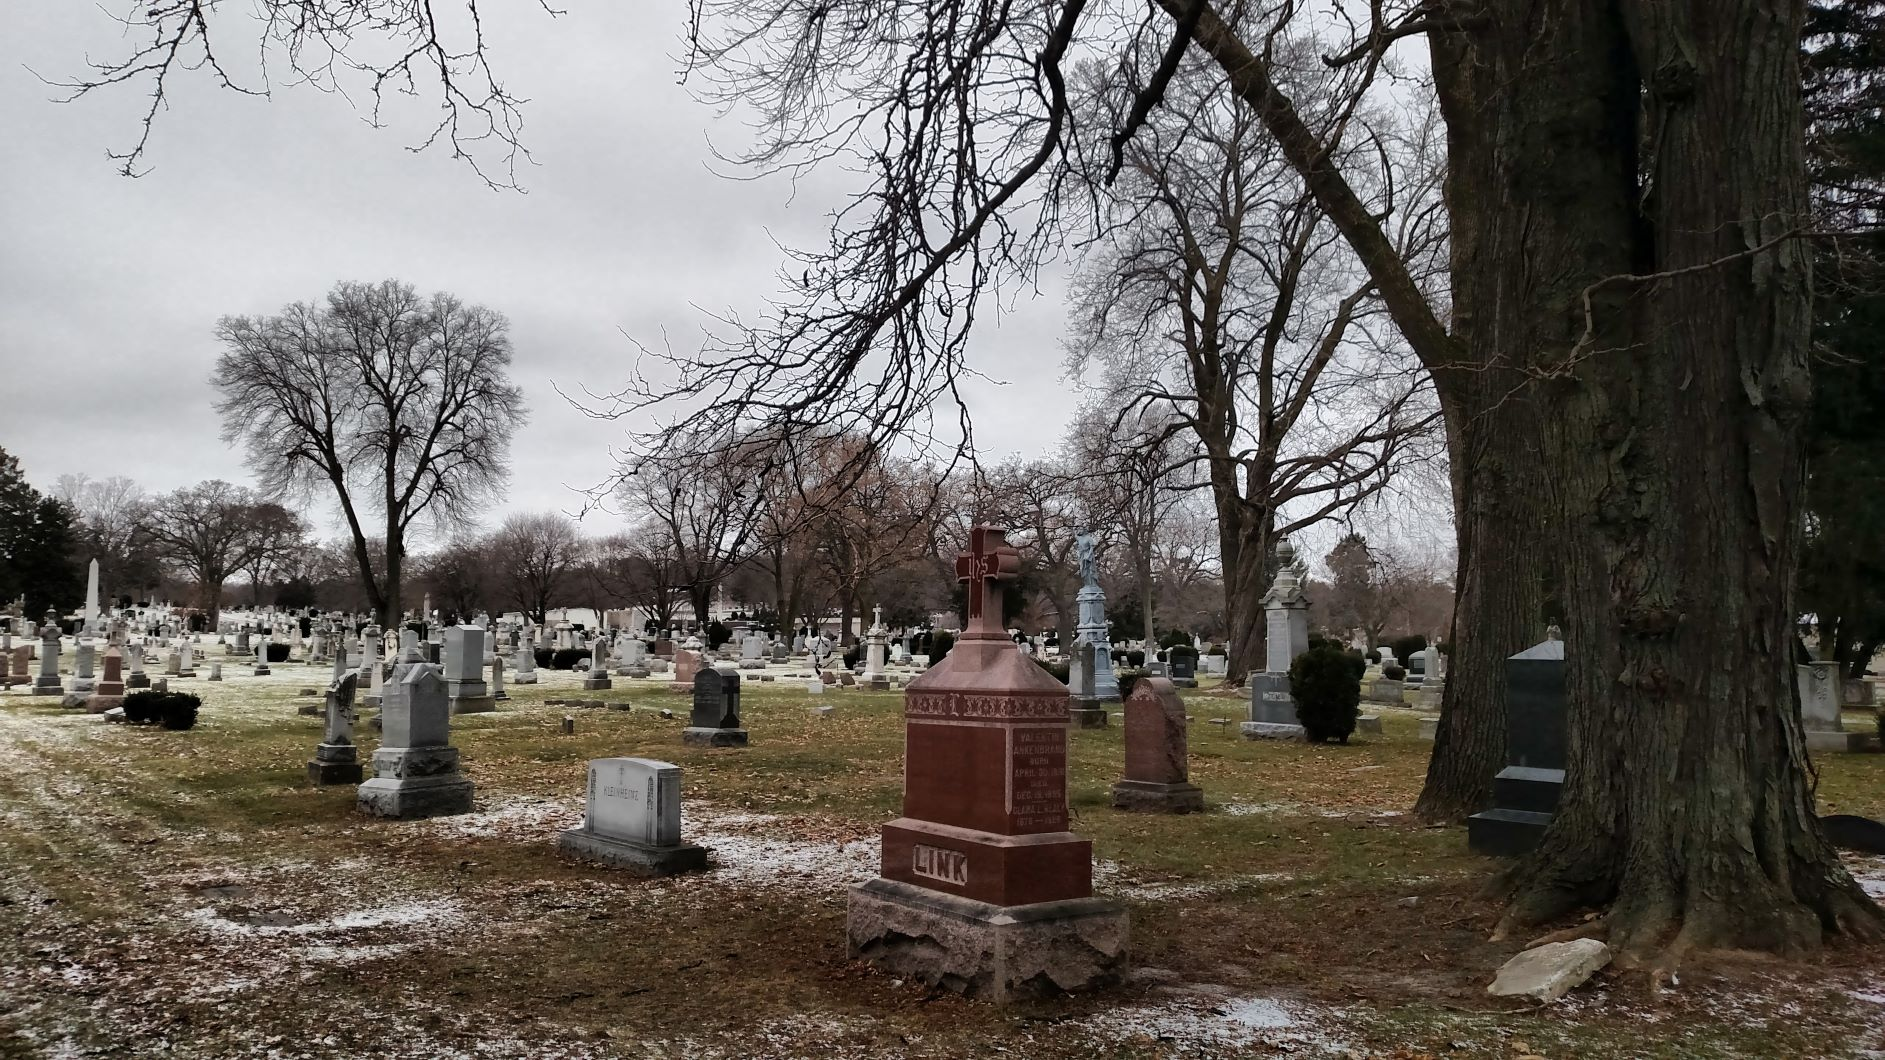 View of the cemetery from Speedway Road. Photo by Peter Wagner